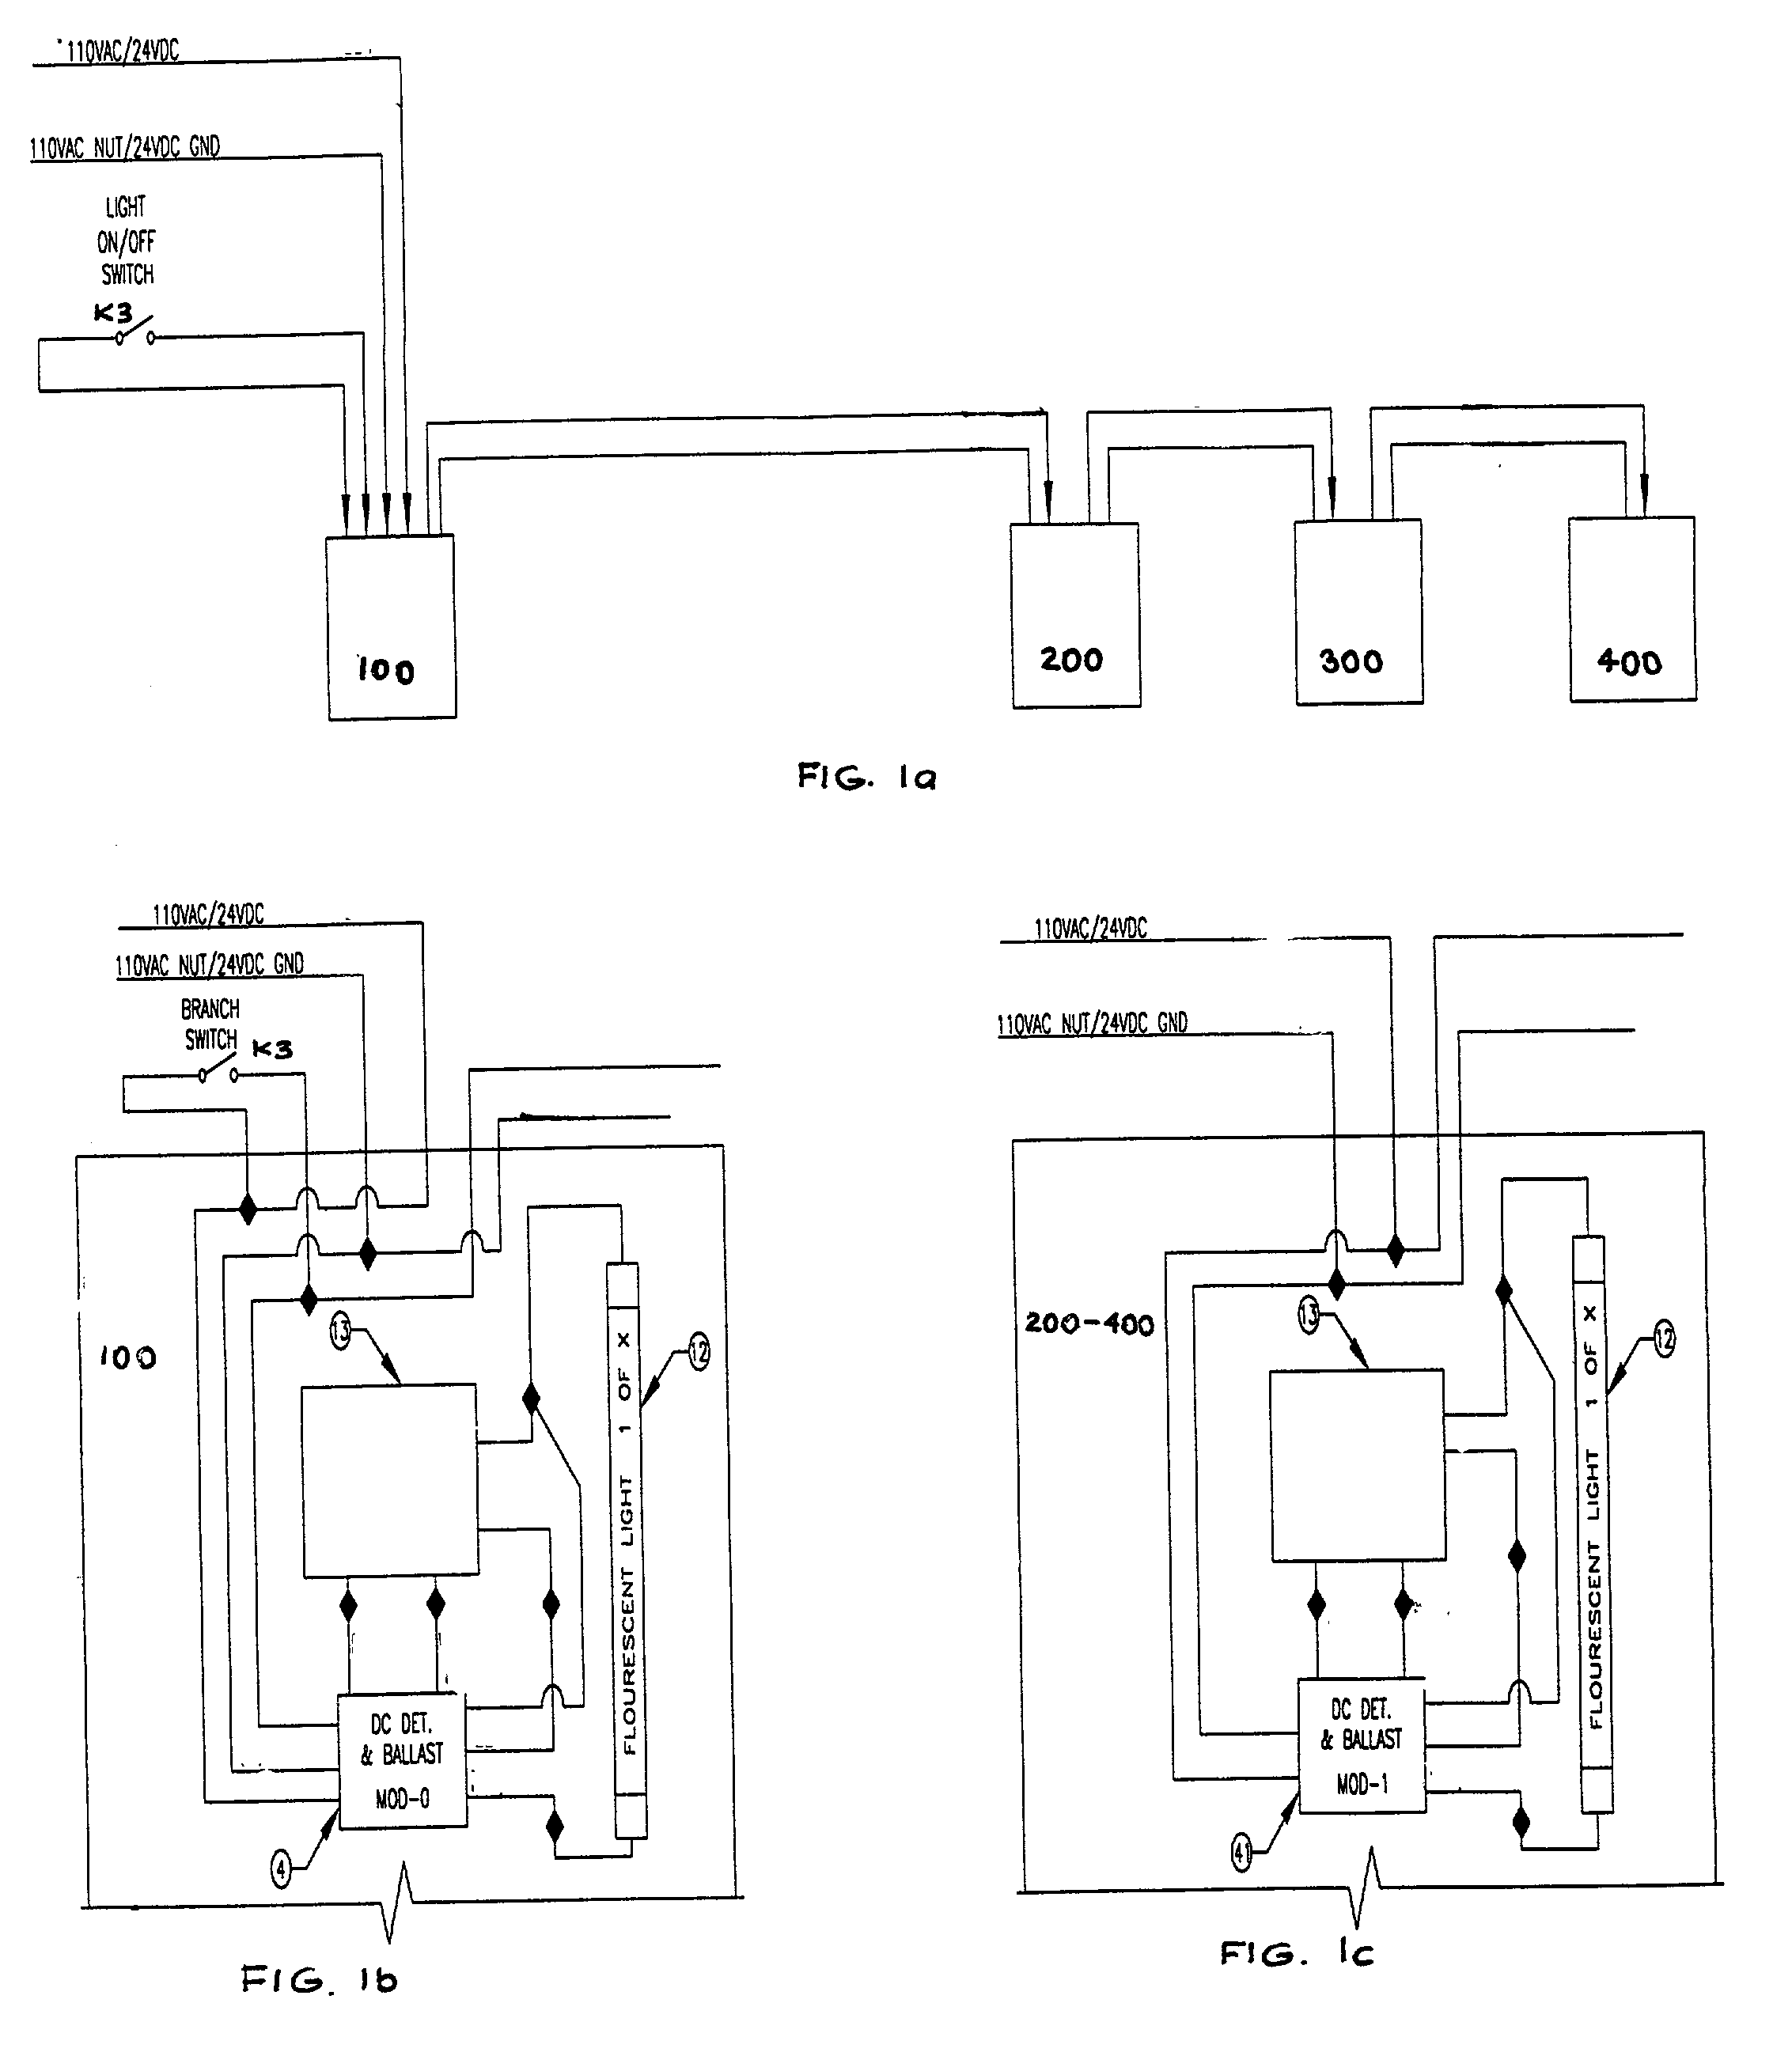 US20020047627A1 20020425 D00001 patent us20020047627 central battery emergency lighting system central battery system wiring diagram at bayanpartner.co